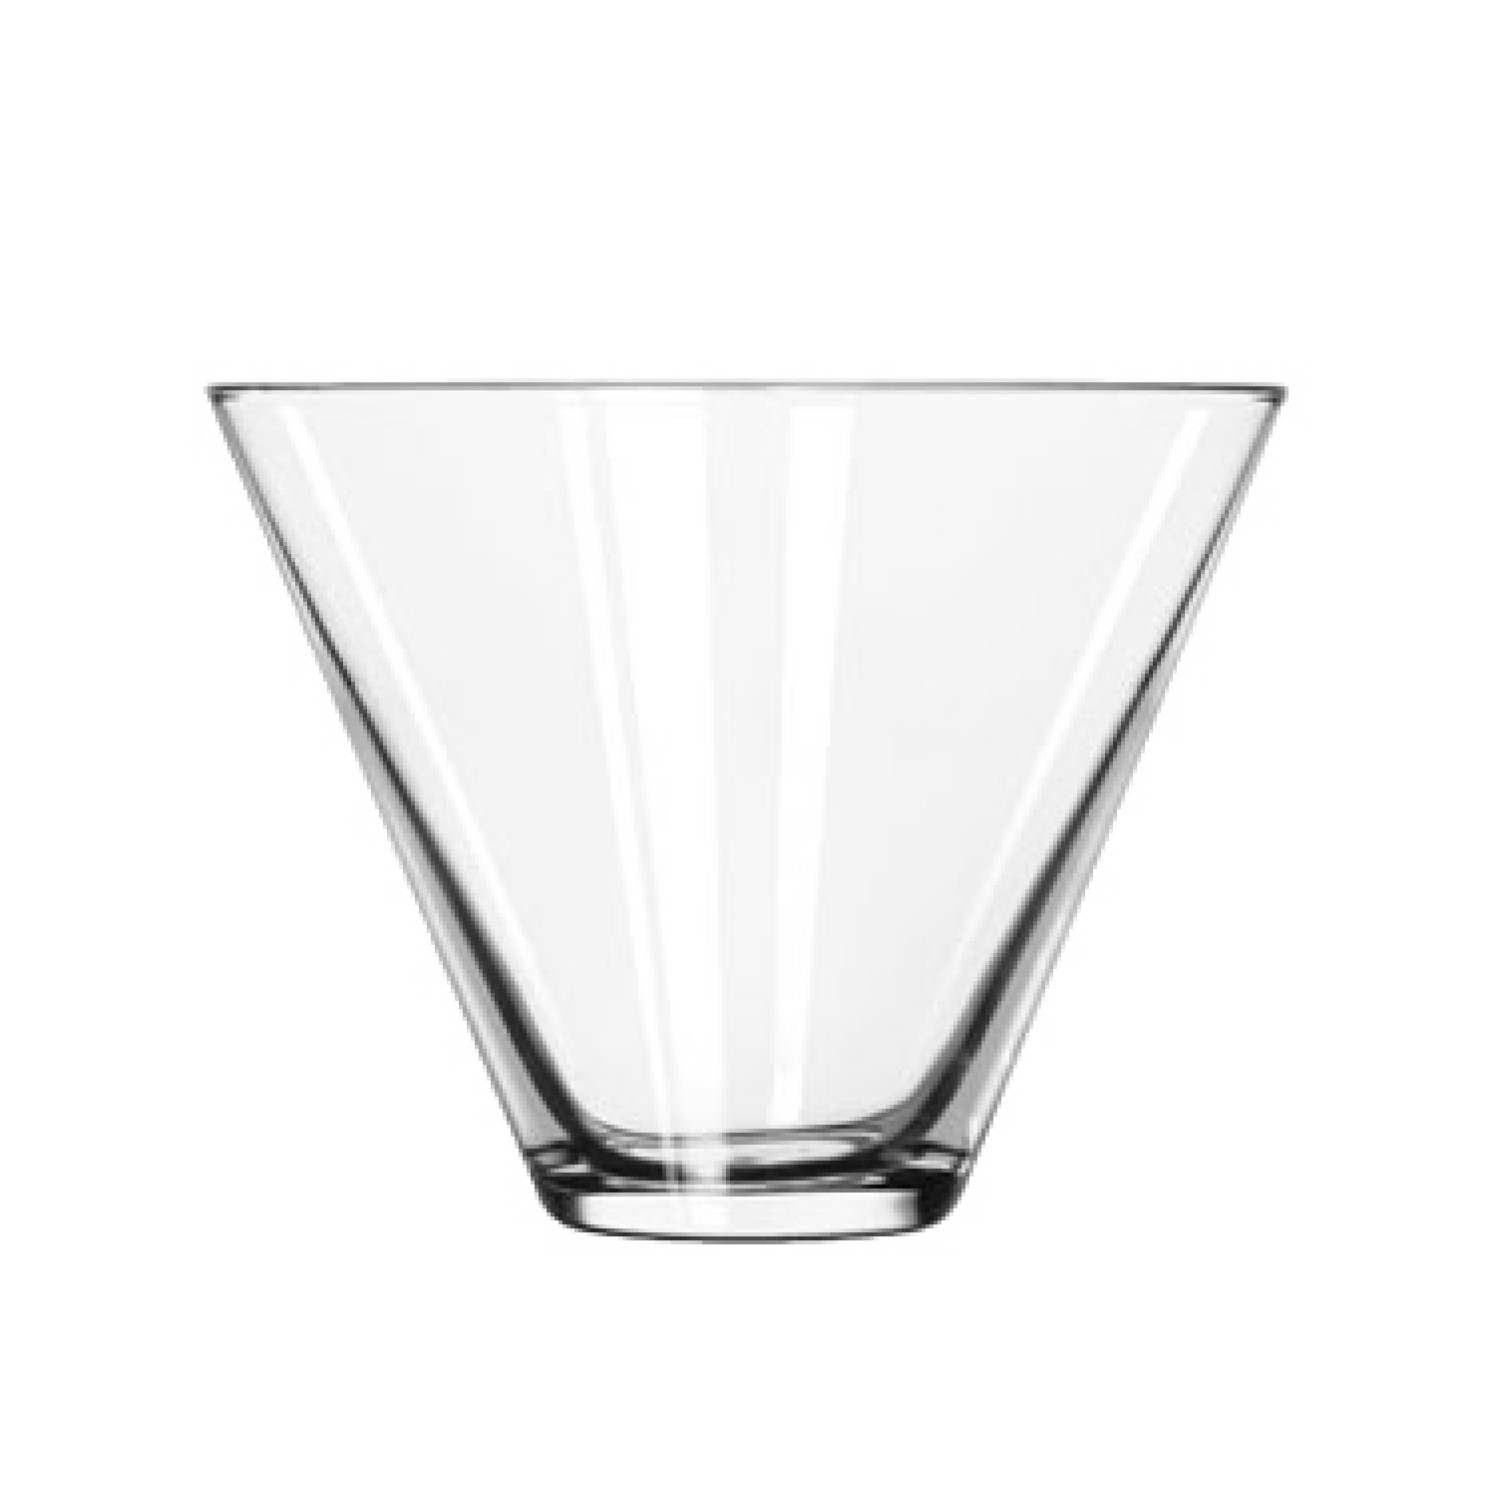 Libbey 224 Stemless Martini Glass 13.5 oz. - 1 doz